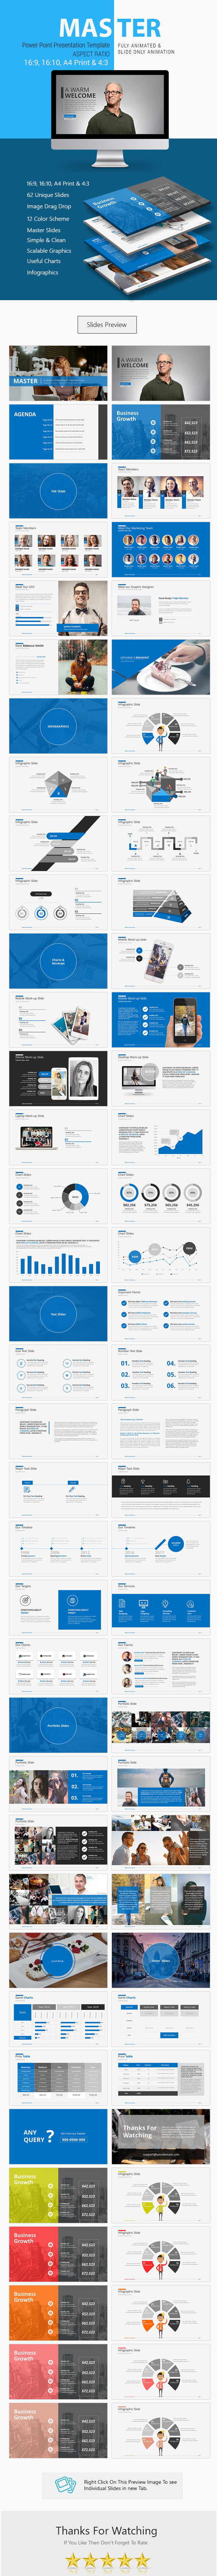 Master Power Point Presentation - Business PowerPoint Templates